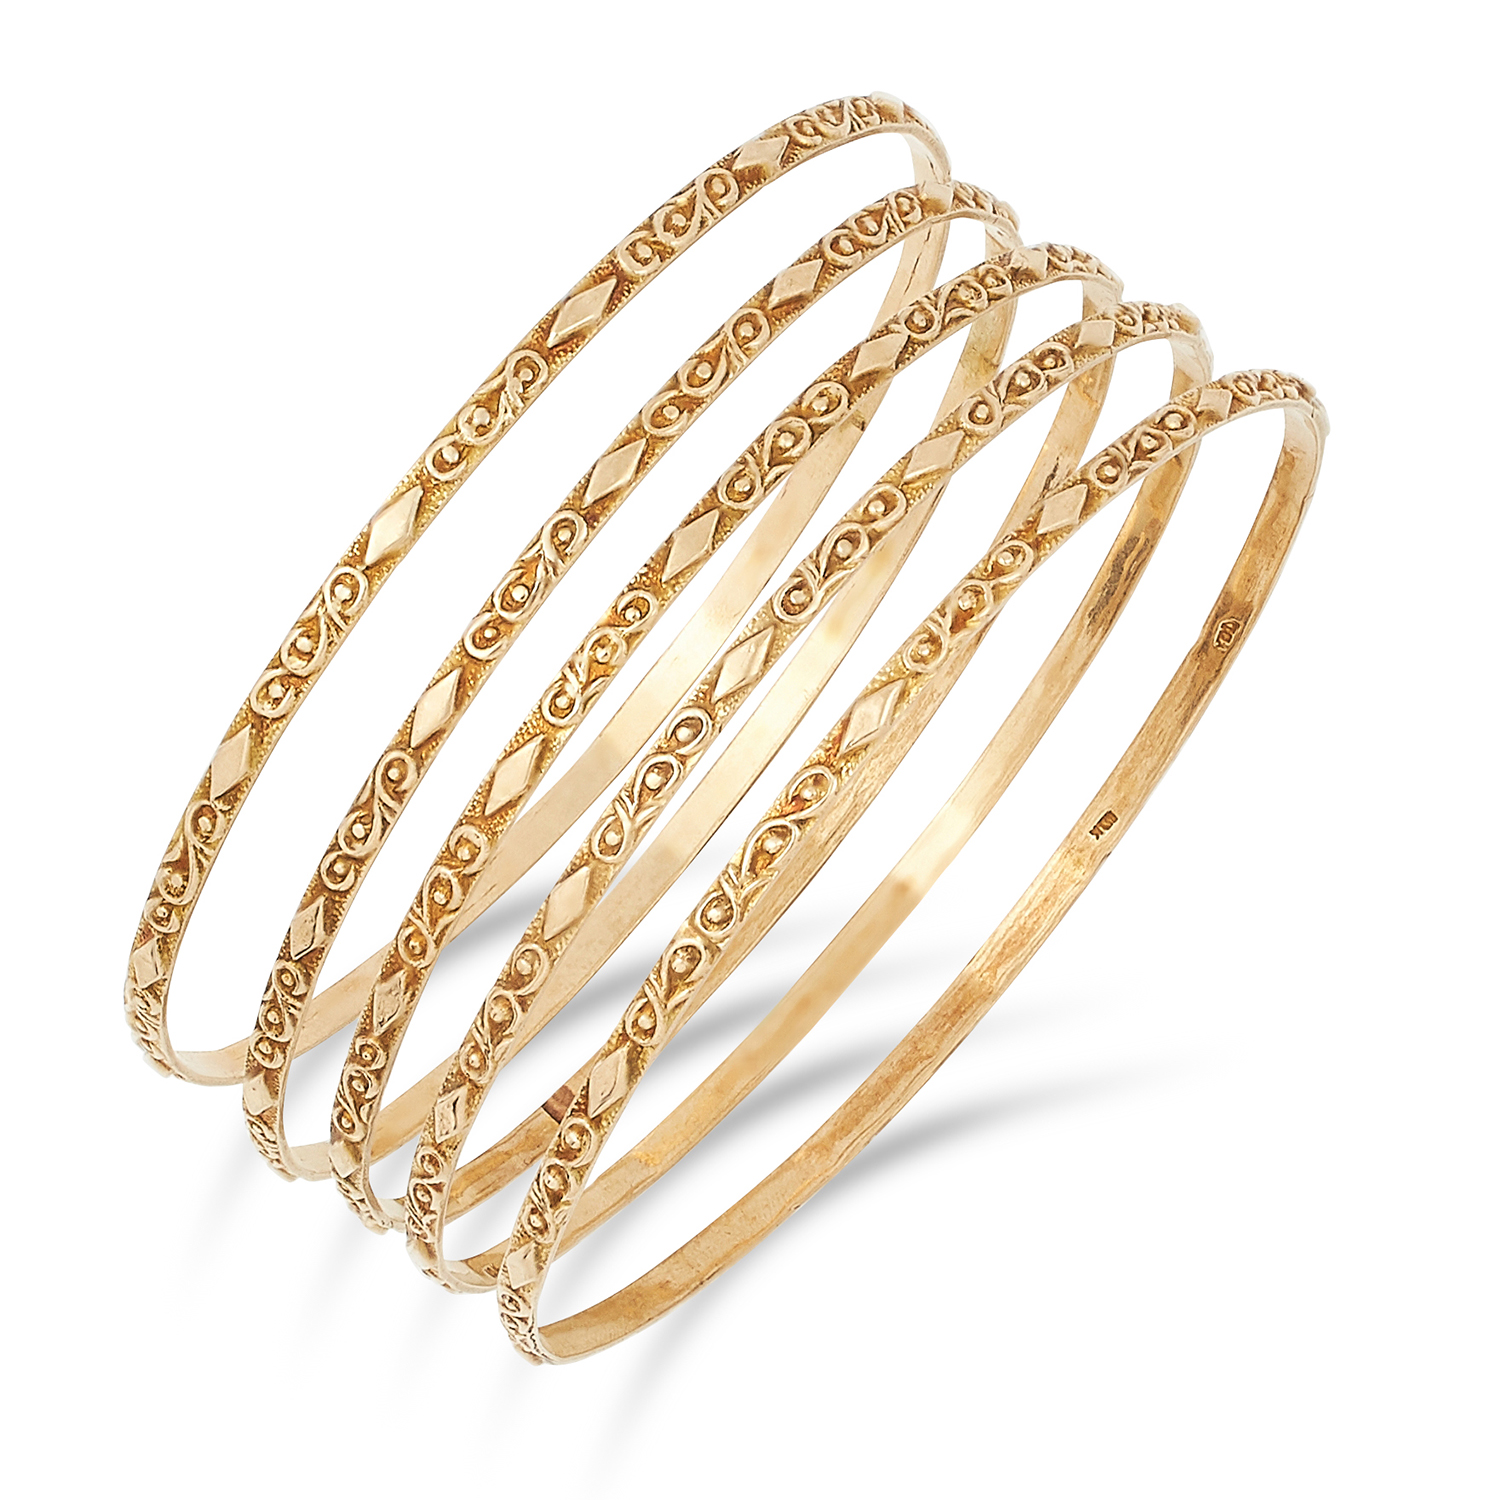 Los 23 - FIVE GOLD BANGLES, with textured design, inner diameter: 6.5cm, 24.7g.